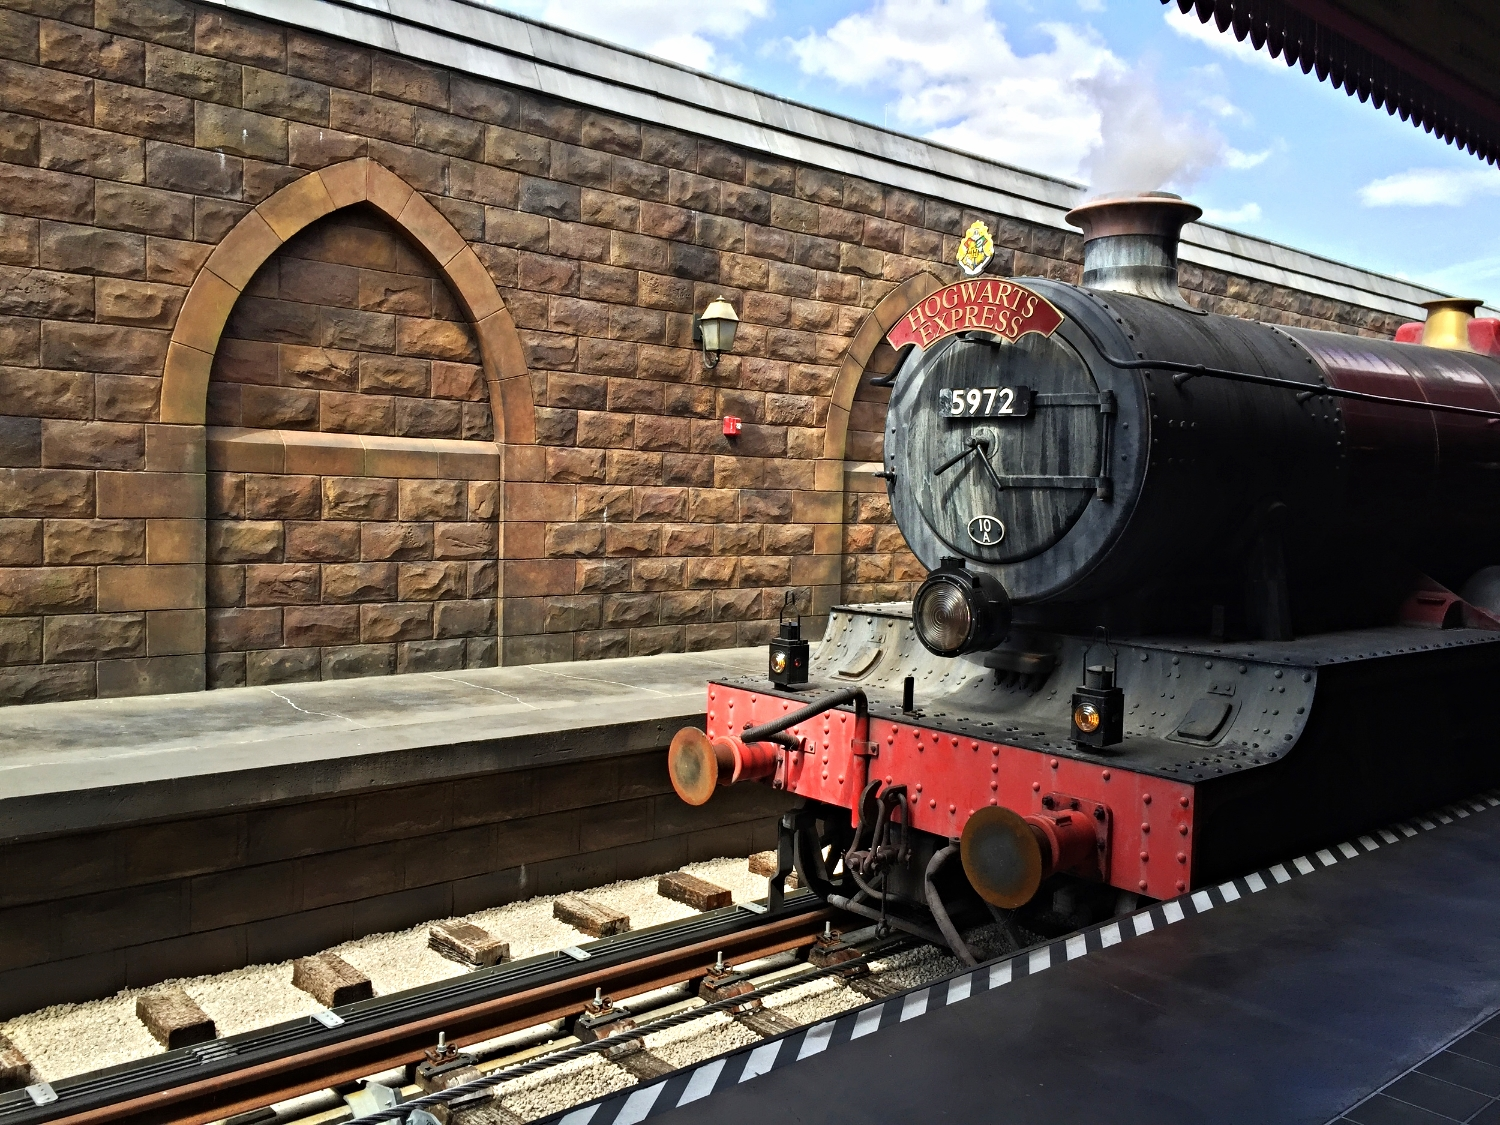 Learn about the Hogwarts Express train that takes guests from Hogsmeade Station to   King's Cross Station in London.